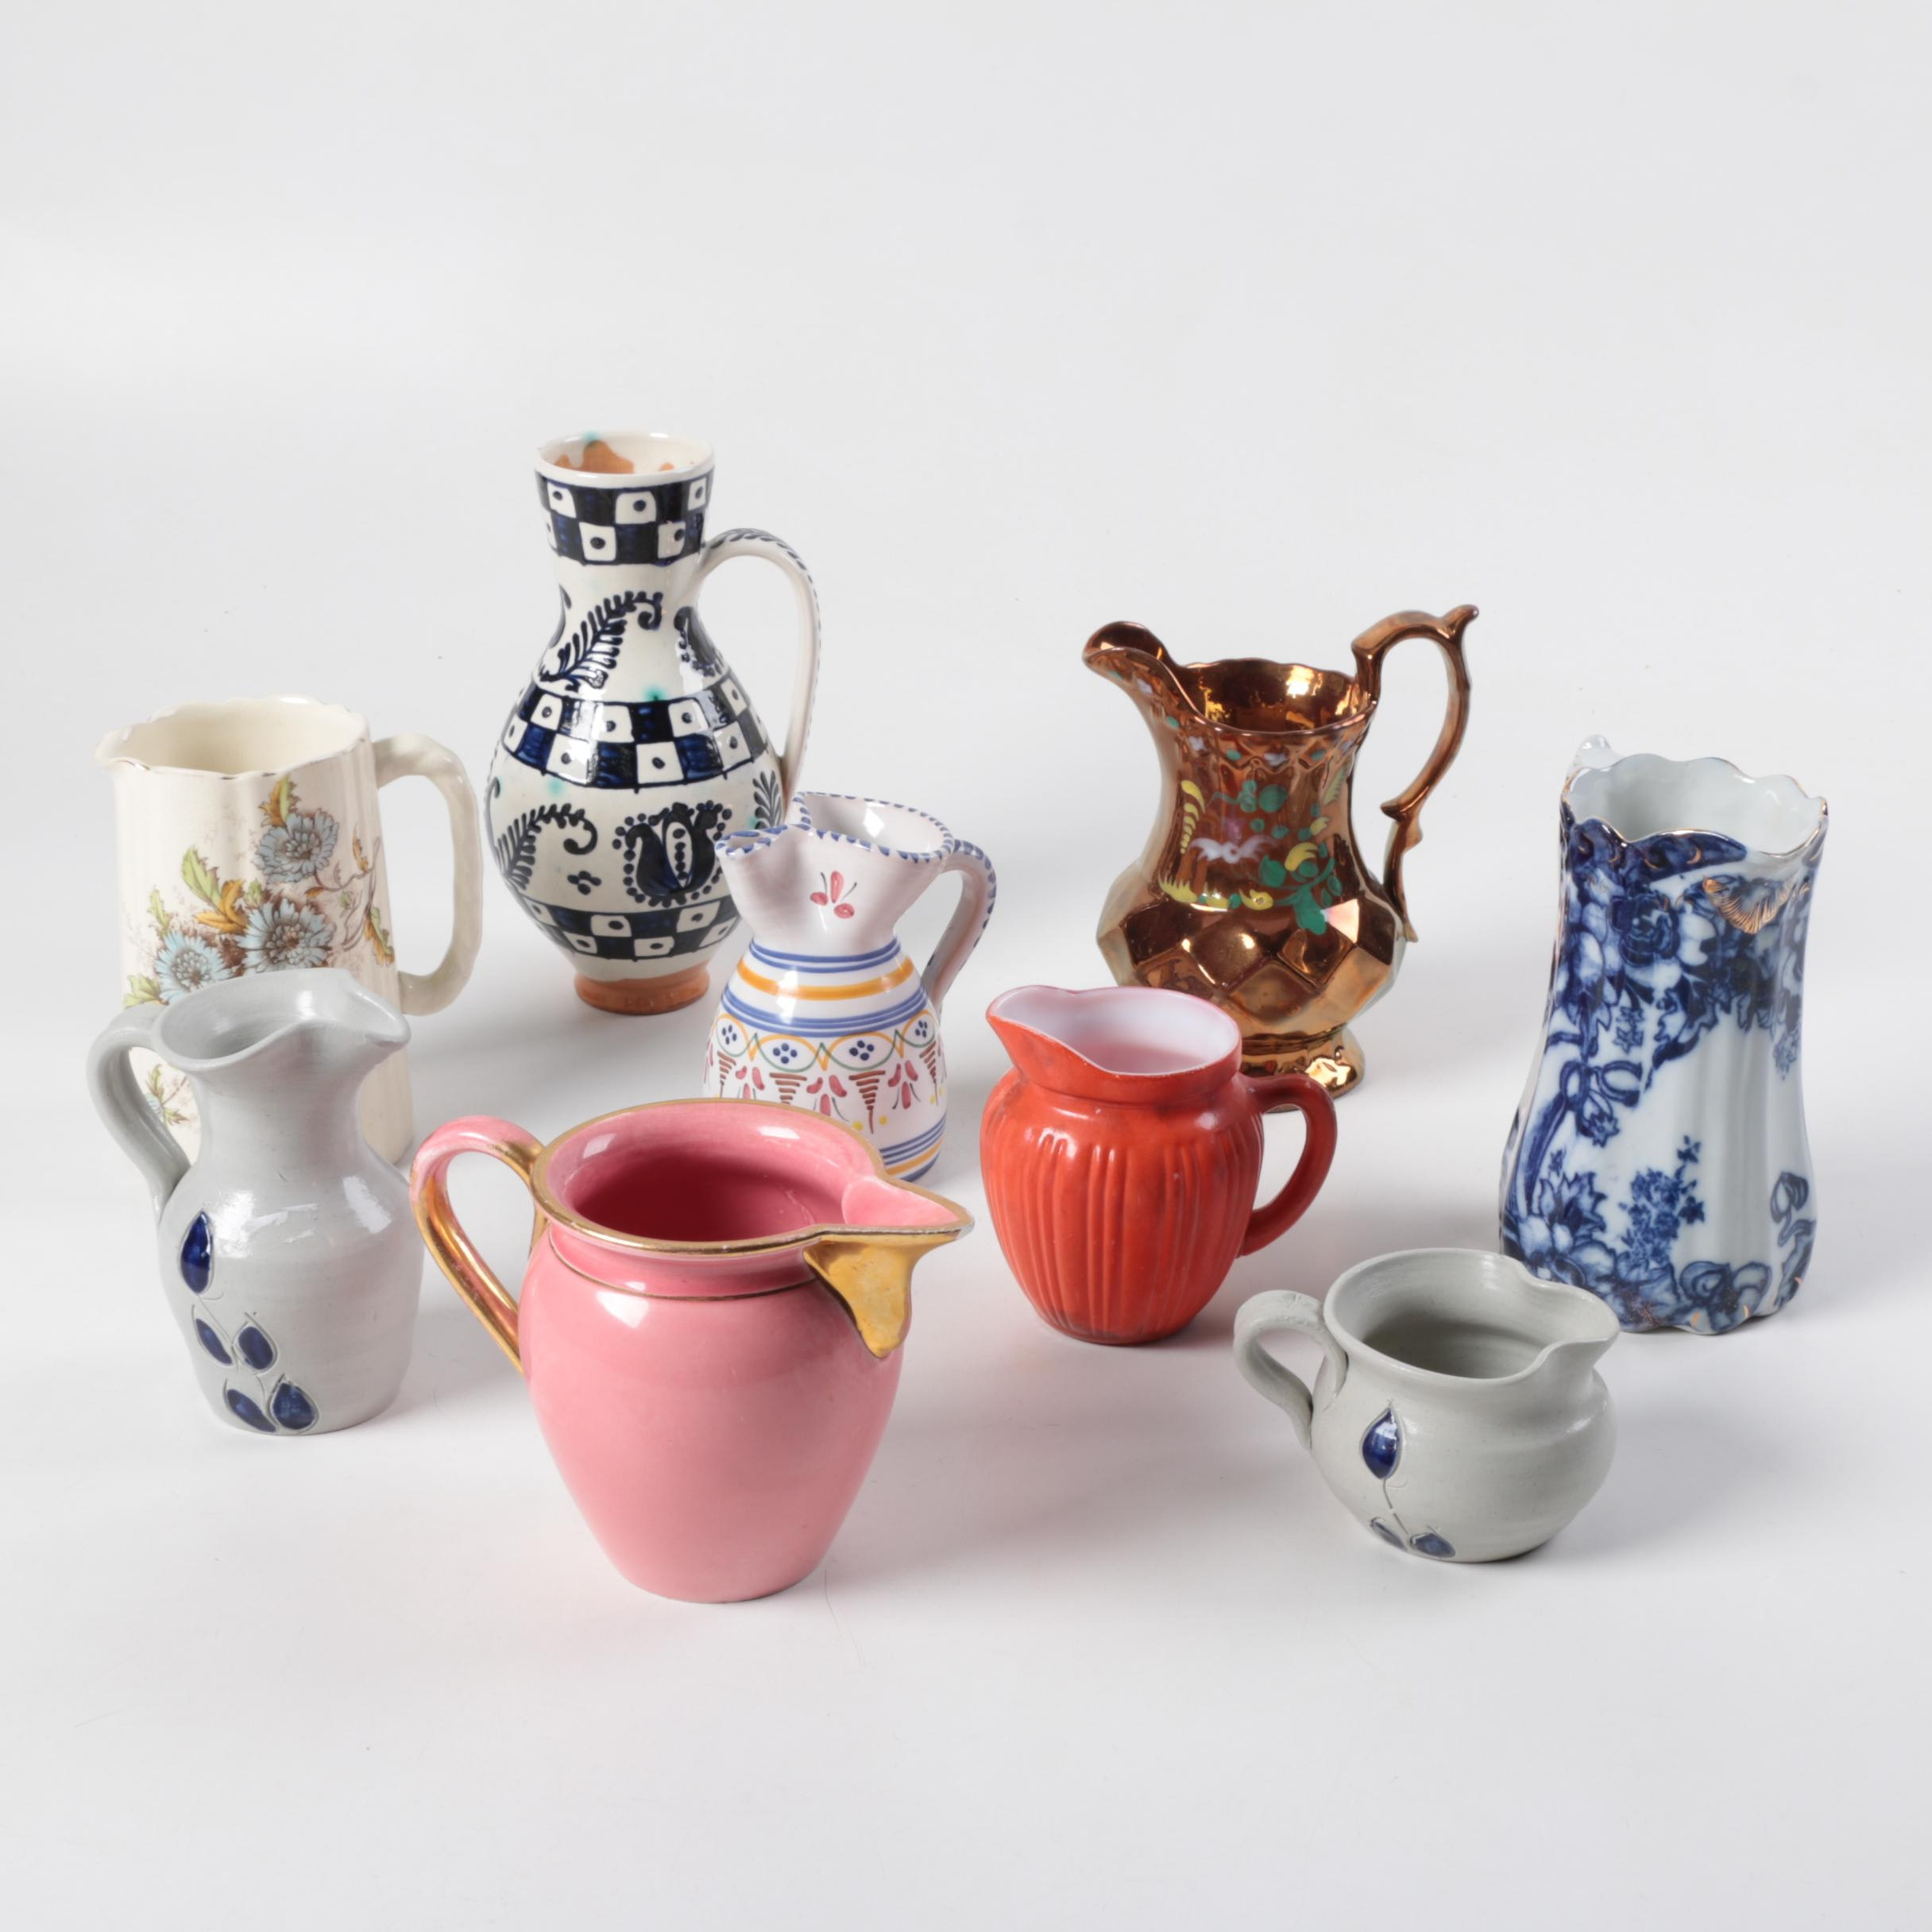 Decorative Ceramic and Glass Pitchers featuring Royal Doulton